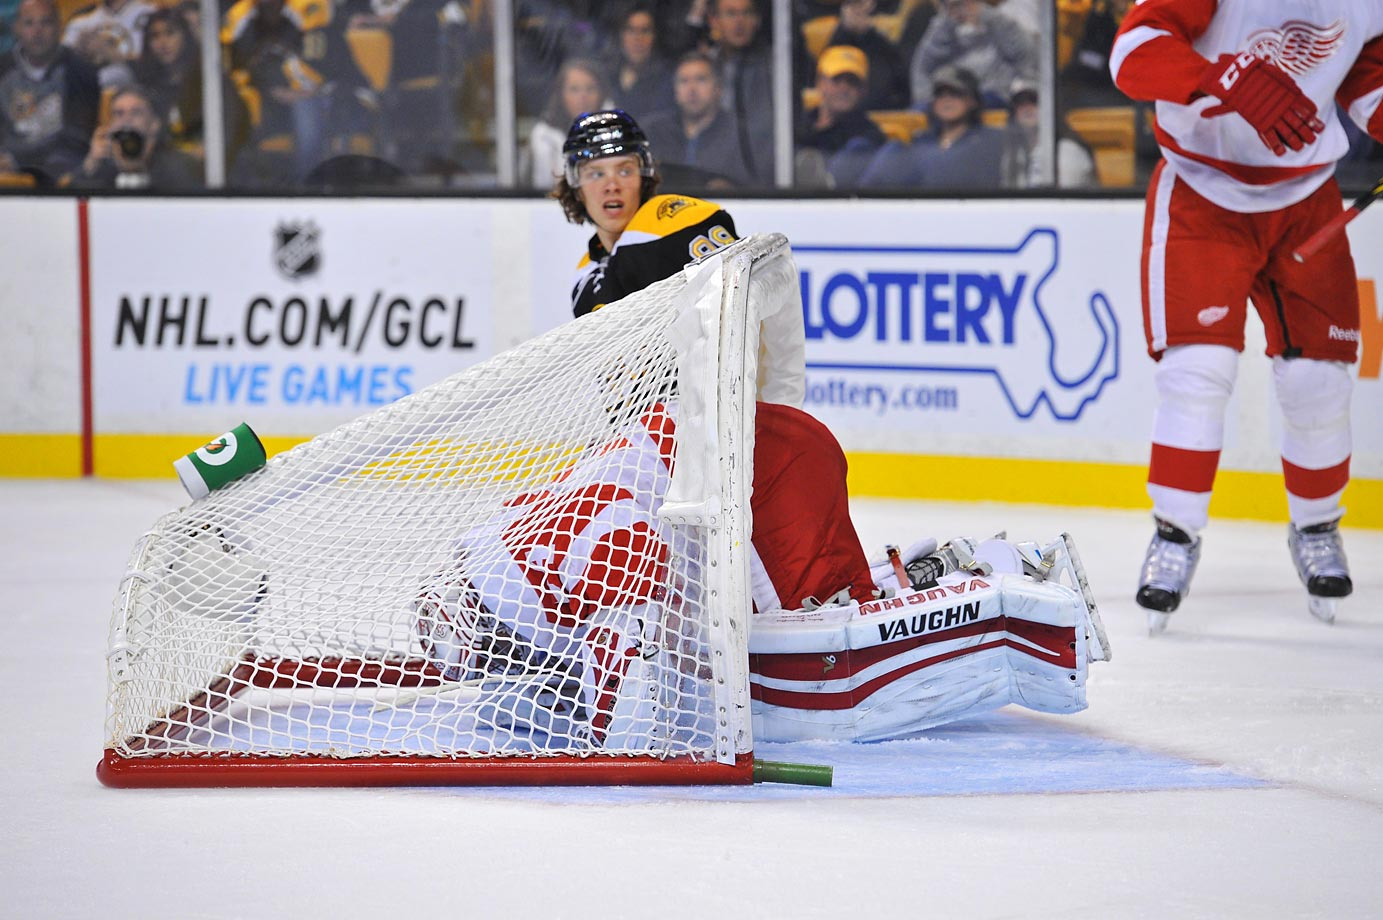 Detroit Red Wings goalie Petr Mrazek gets the net flipped over his head during a preseason game against the Boston Bruins at the TD Garden in Boston.